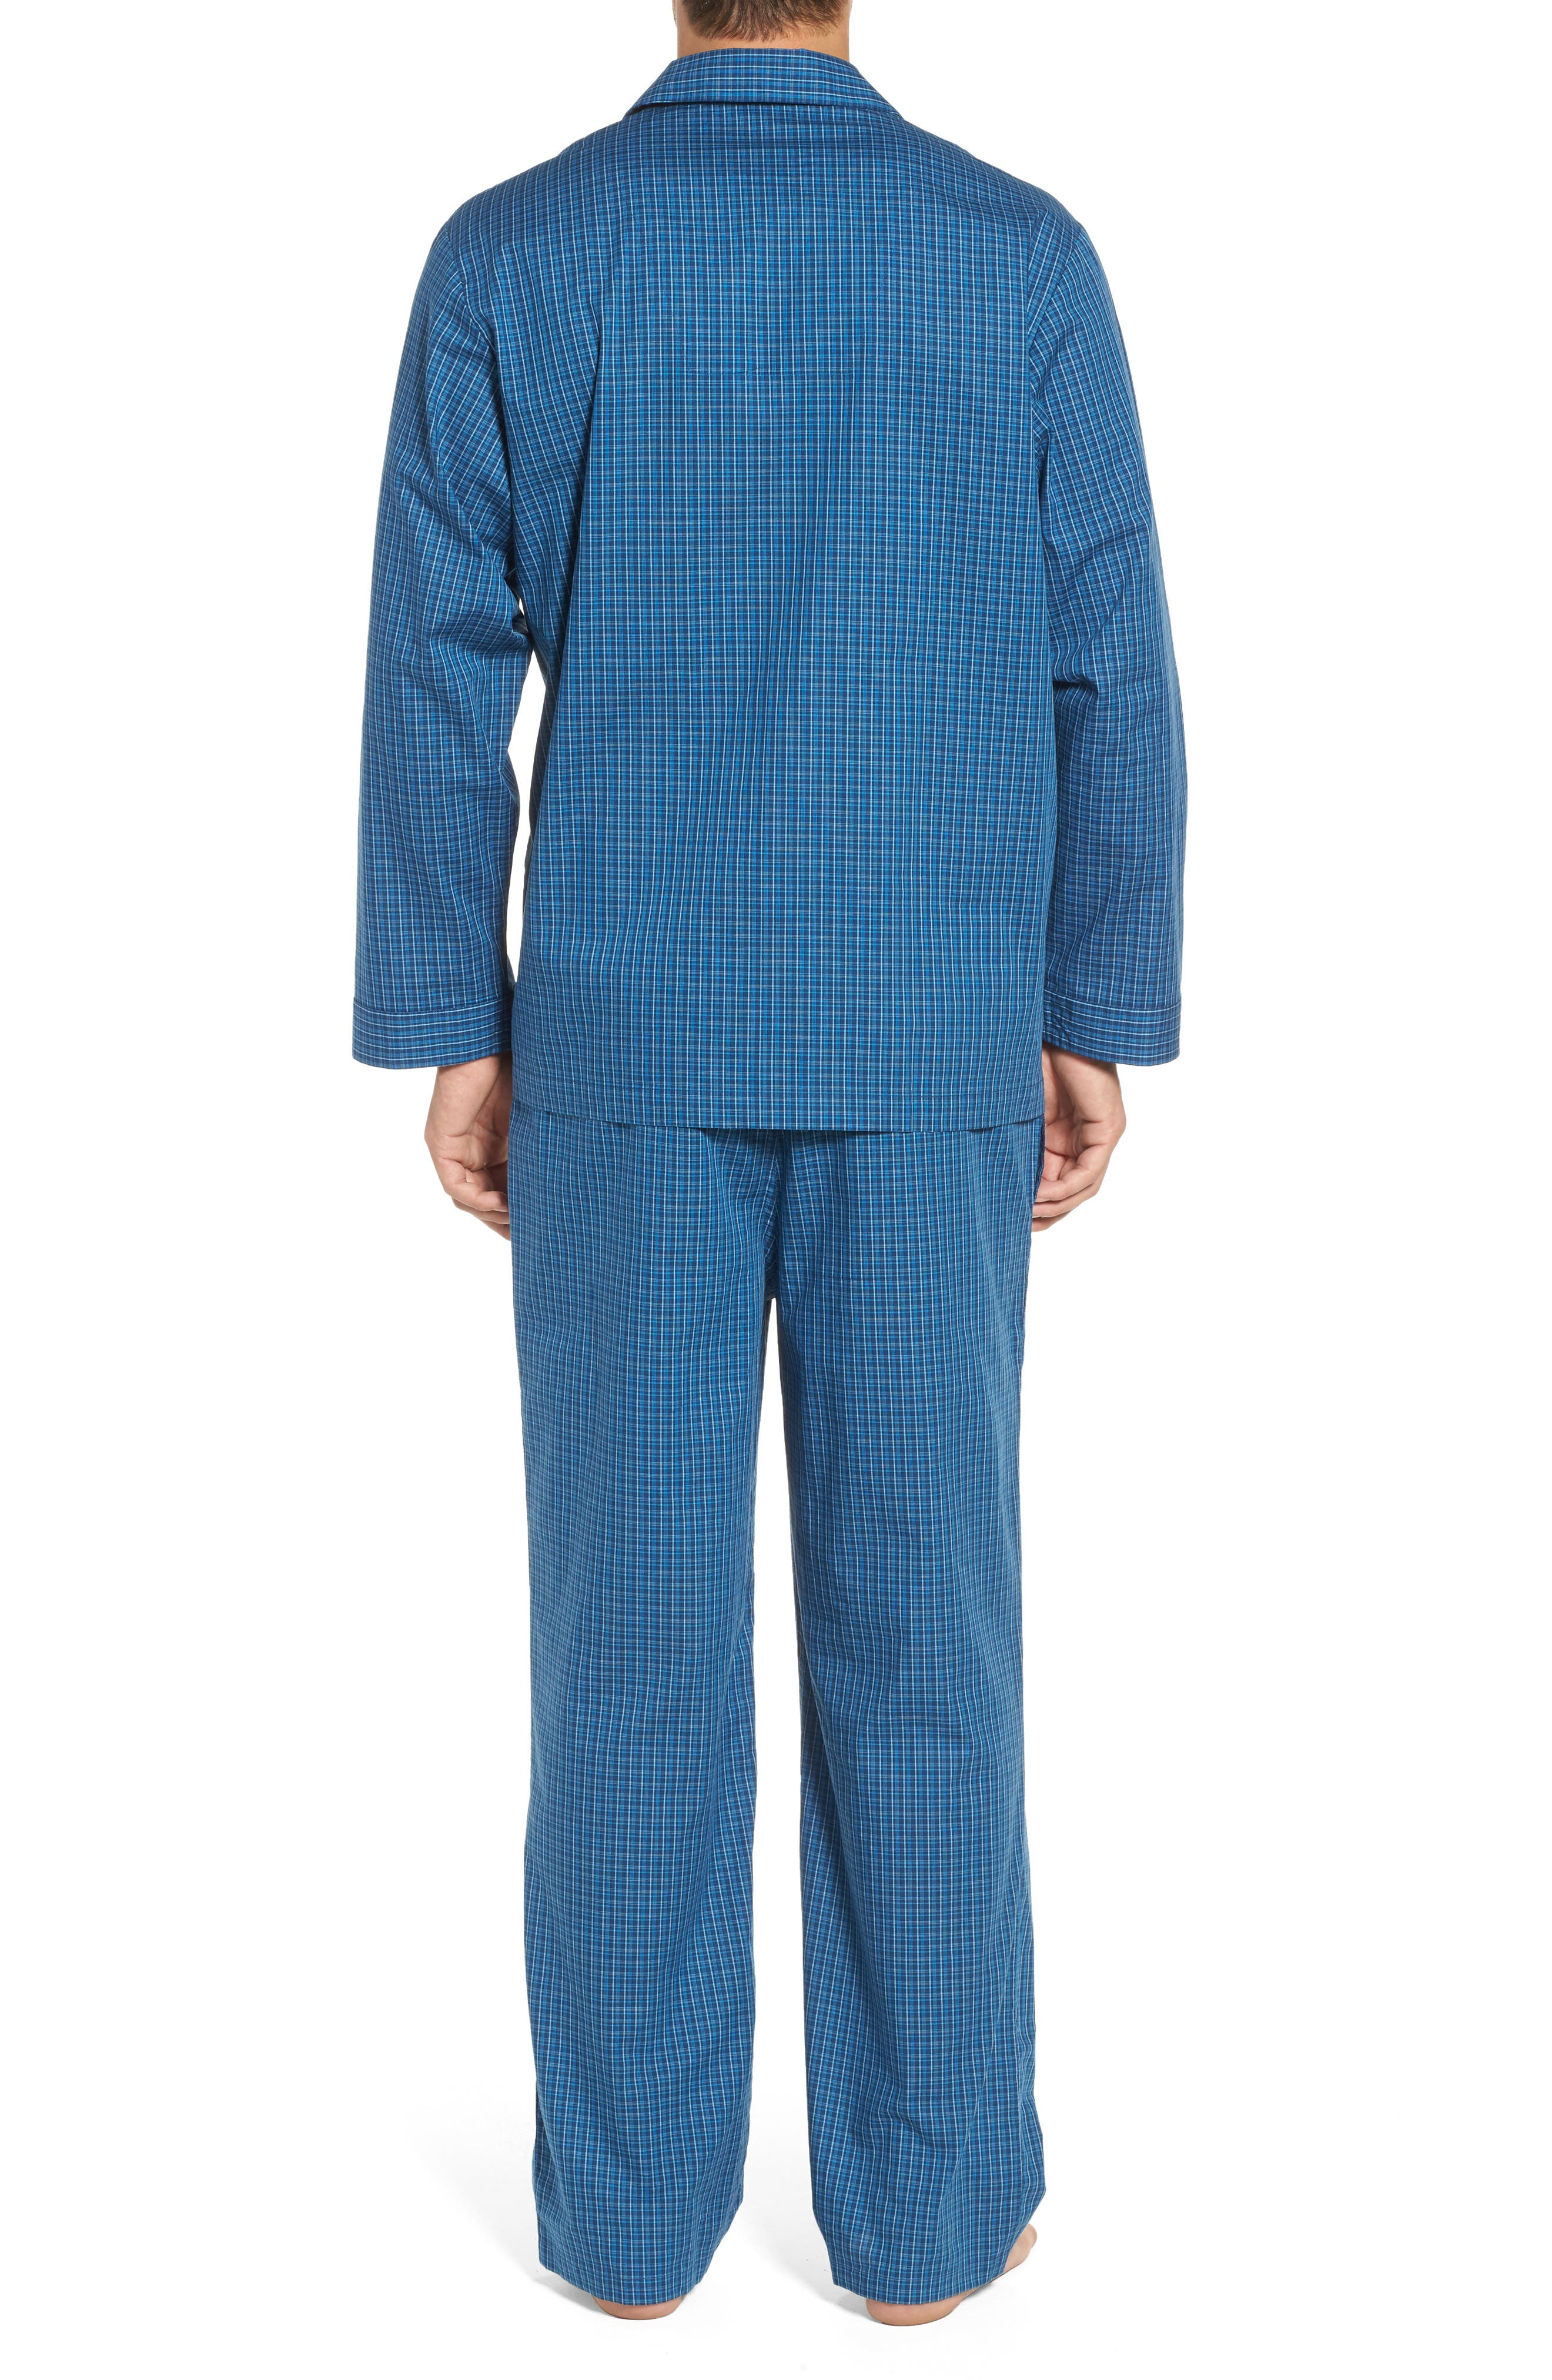 Poplin Pajama Set,                             Alternate thumbnail 2, color,                             Navy Medieval- Blue Plaid